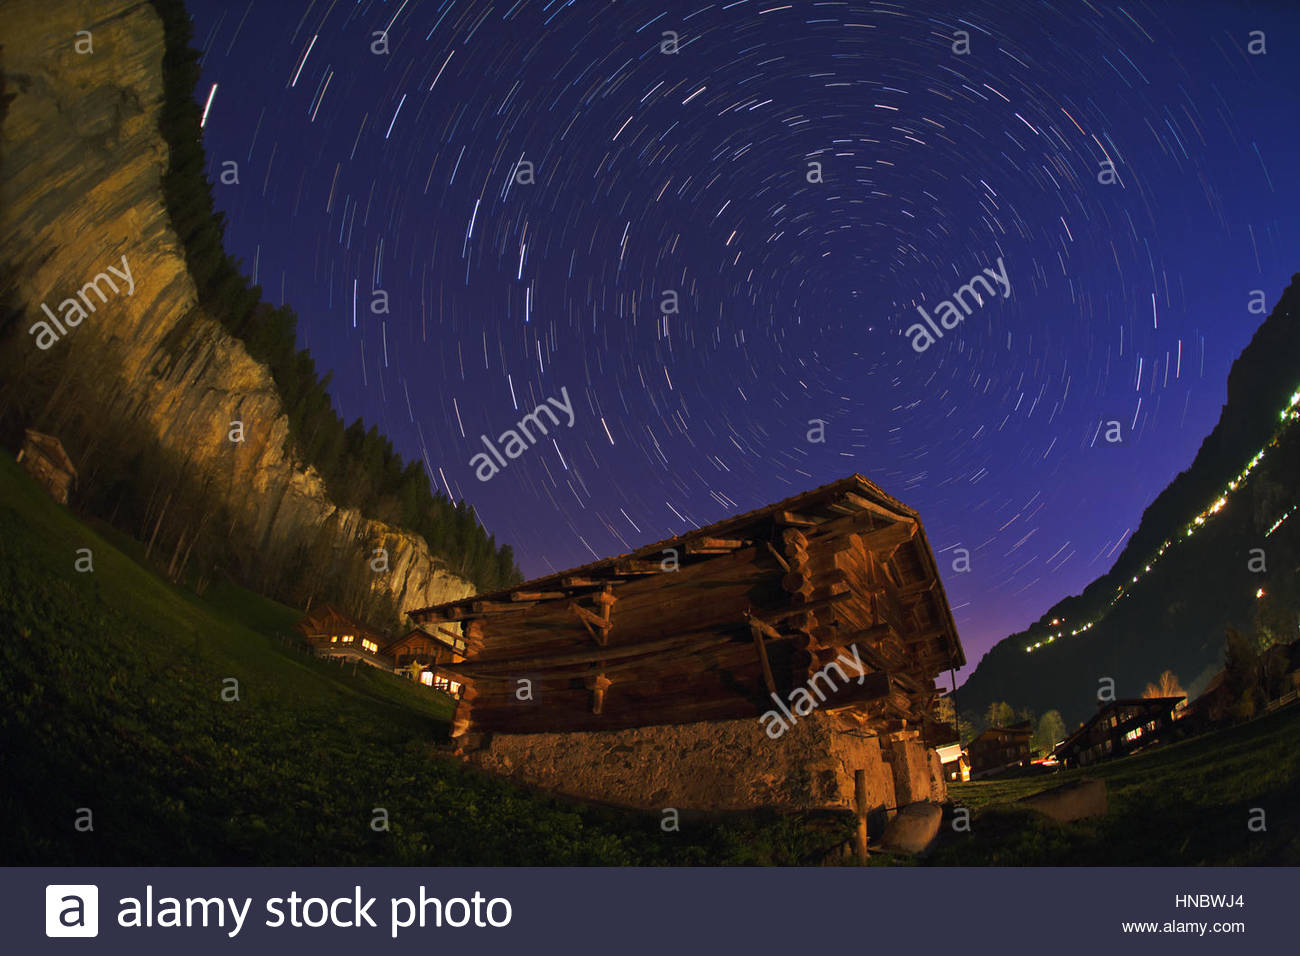 As the Earth rotates during an hour-long exposure, stars circle around the north celestial pole. - Stock Image